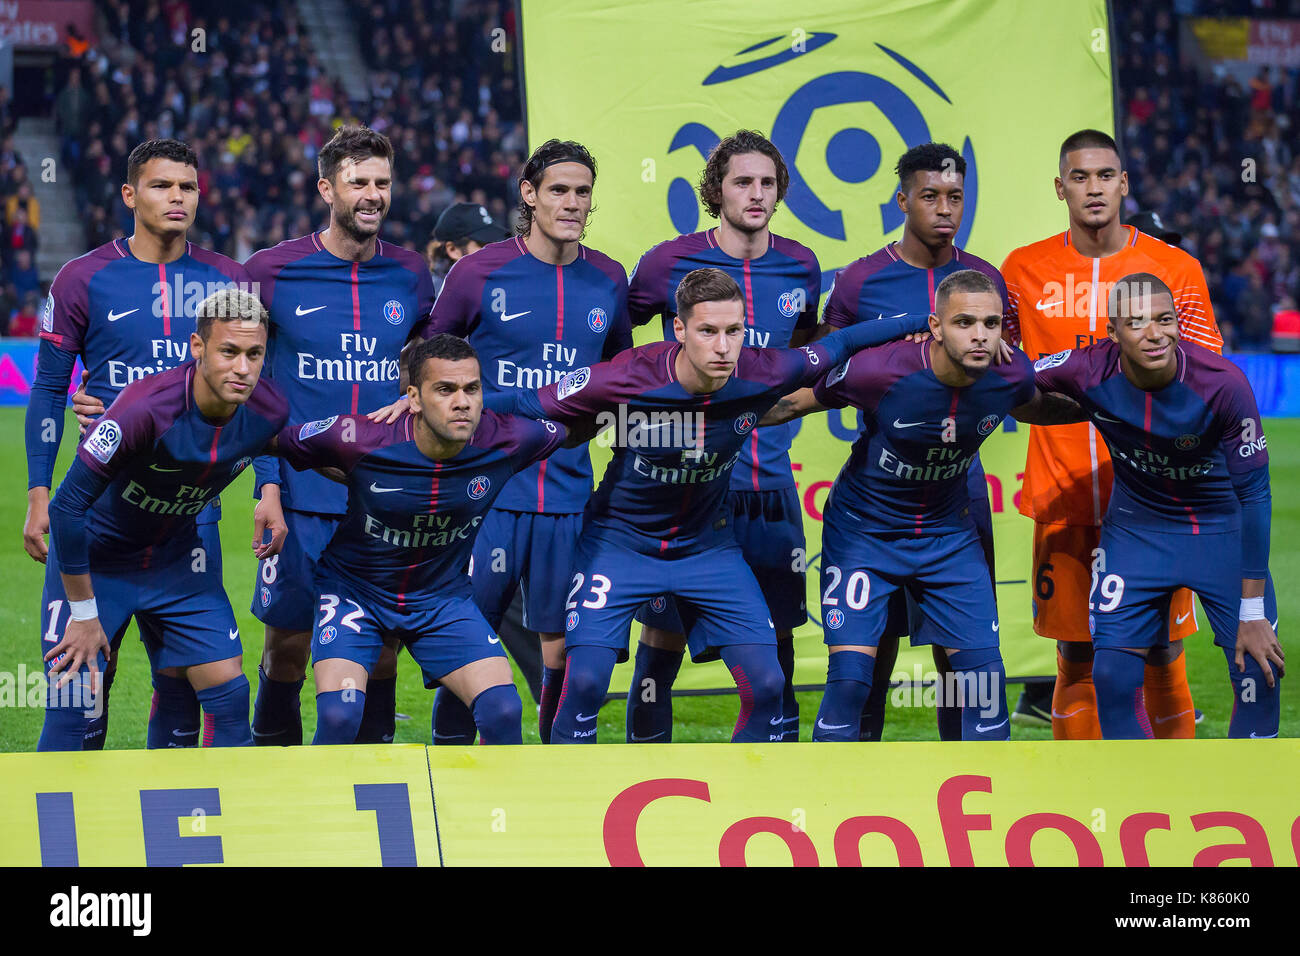 Psg Team Line Up Before The French Ligue 1 Soccer Match Between Paris Stock Photo Alamy